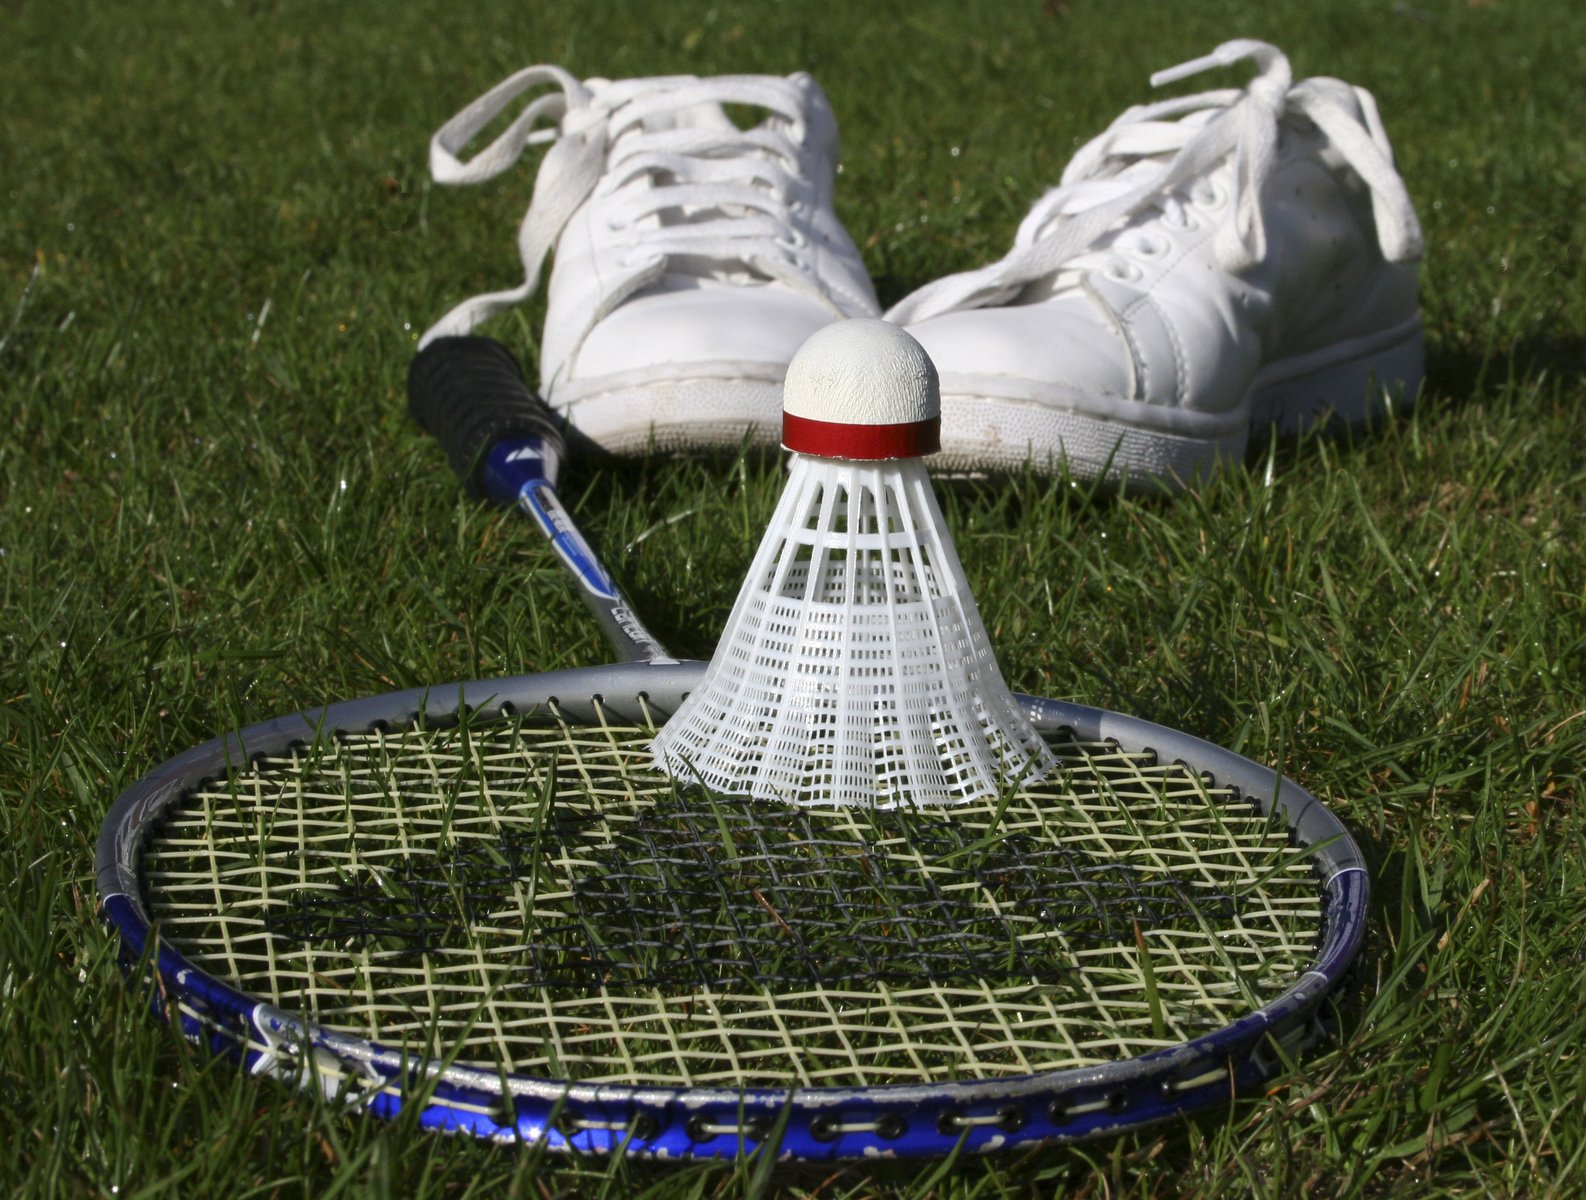 What is the best way to prepare for a badminton tournament?